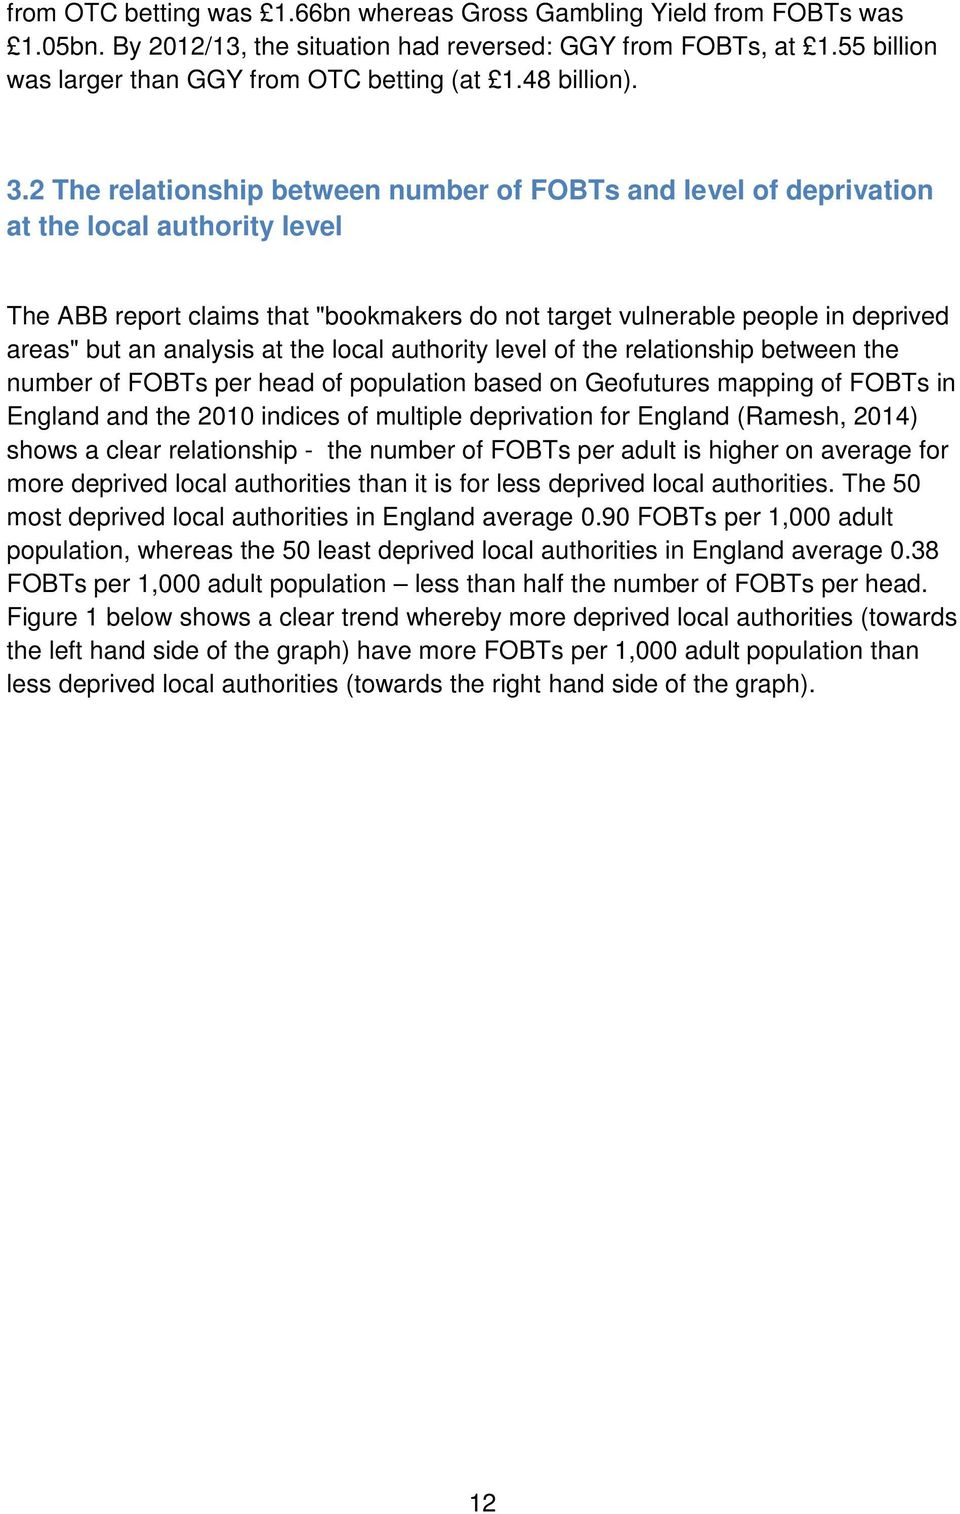 "2 The relationship between number of FOBTs and level of deprivation at the local authority level The ABB report claims that ""bookmakers do not target vulnerable people in deprived areas"" but an"